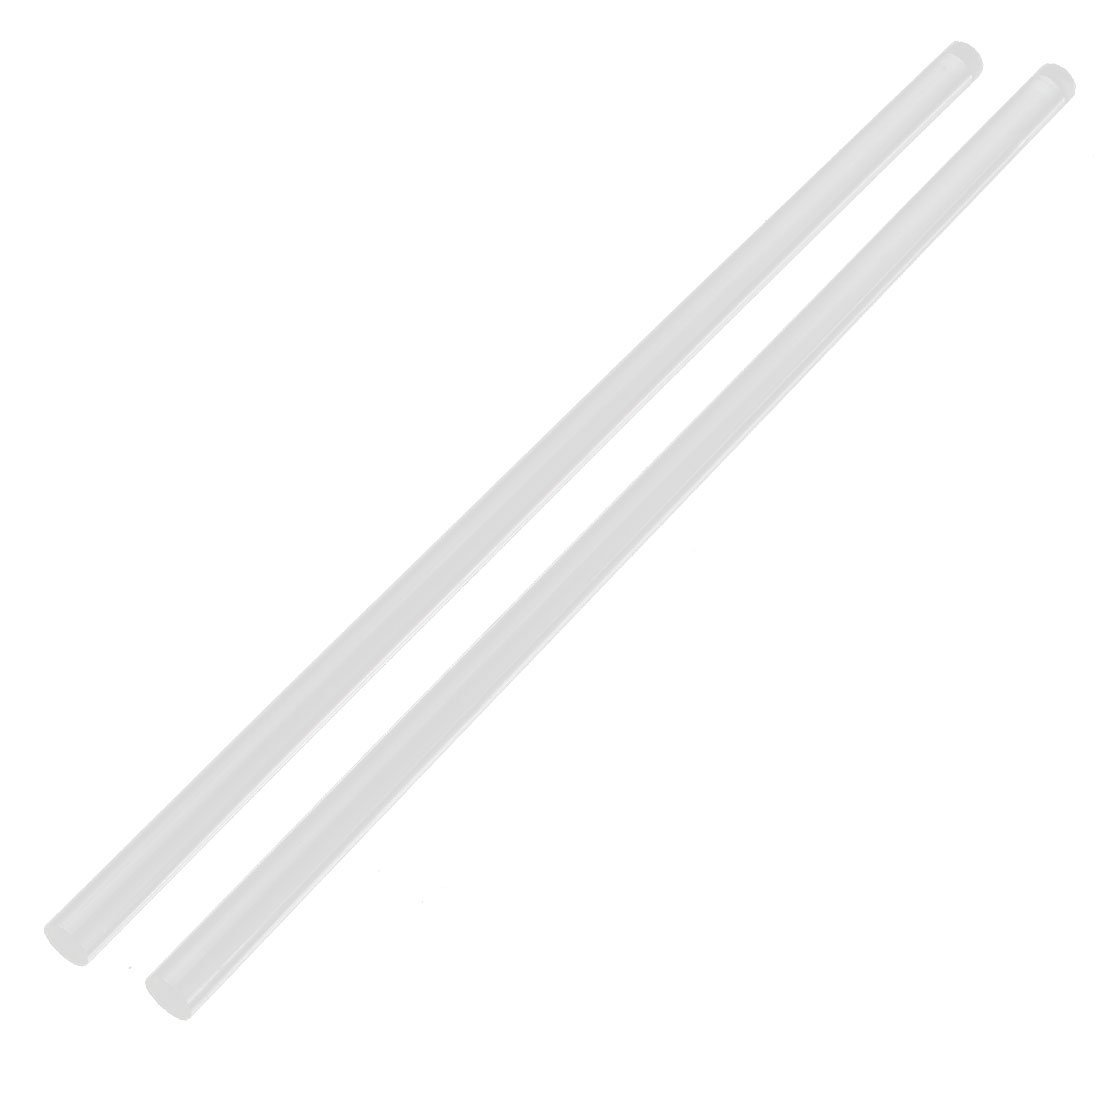 2Pcs 10mm Clear Round Perspex Acrylic Bar PMMA Extruded Rod 12